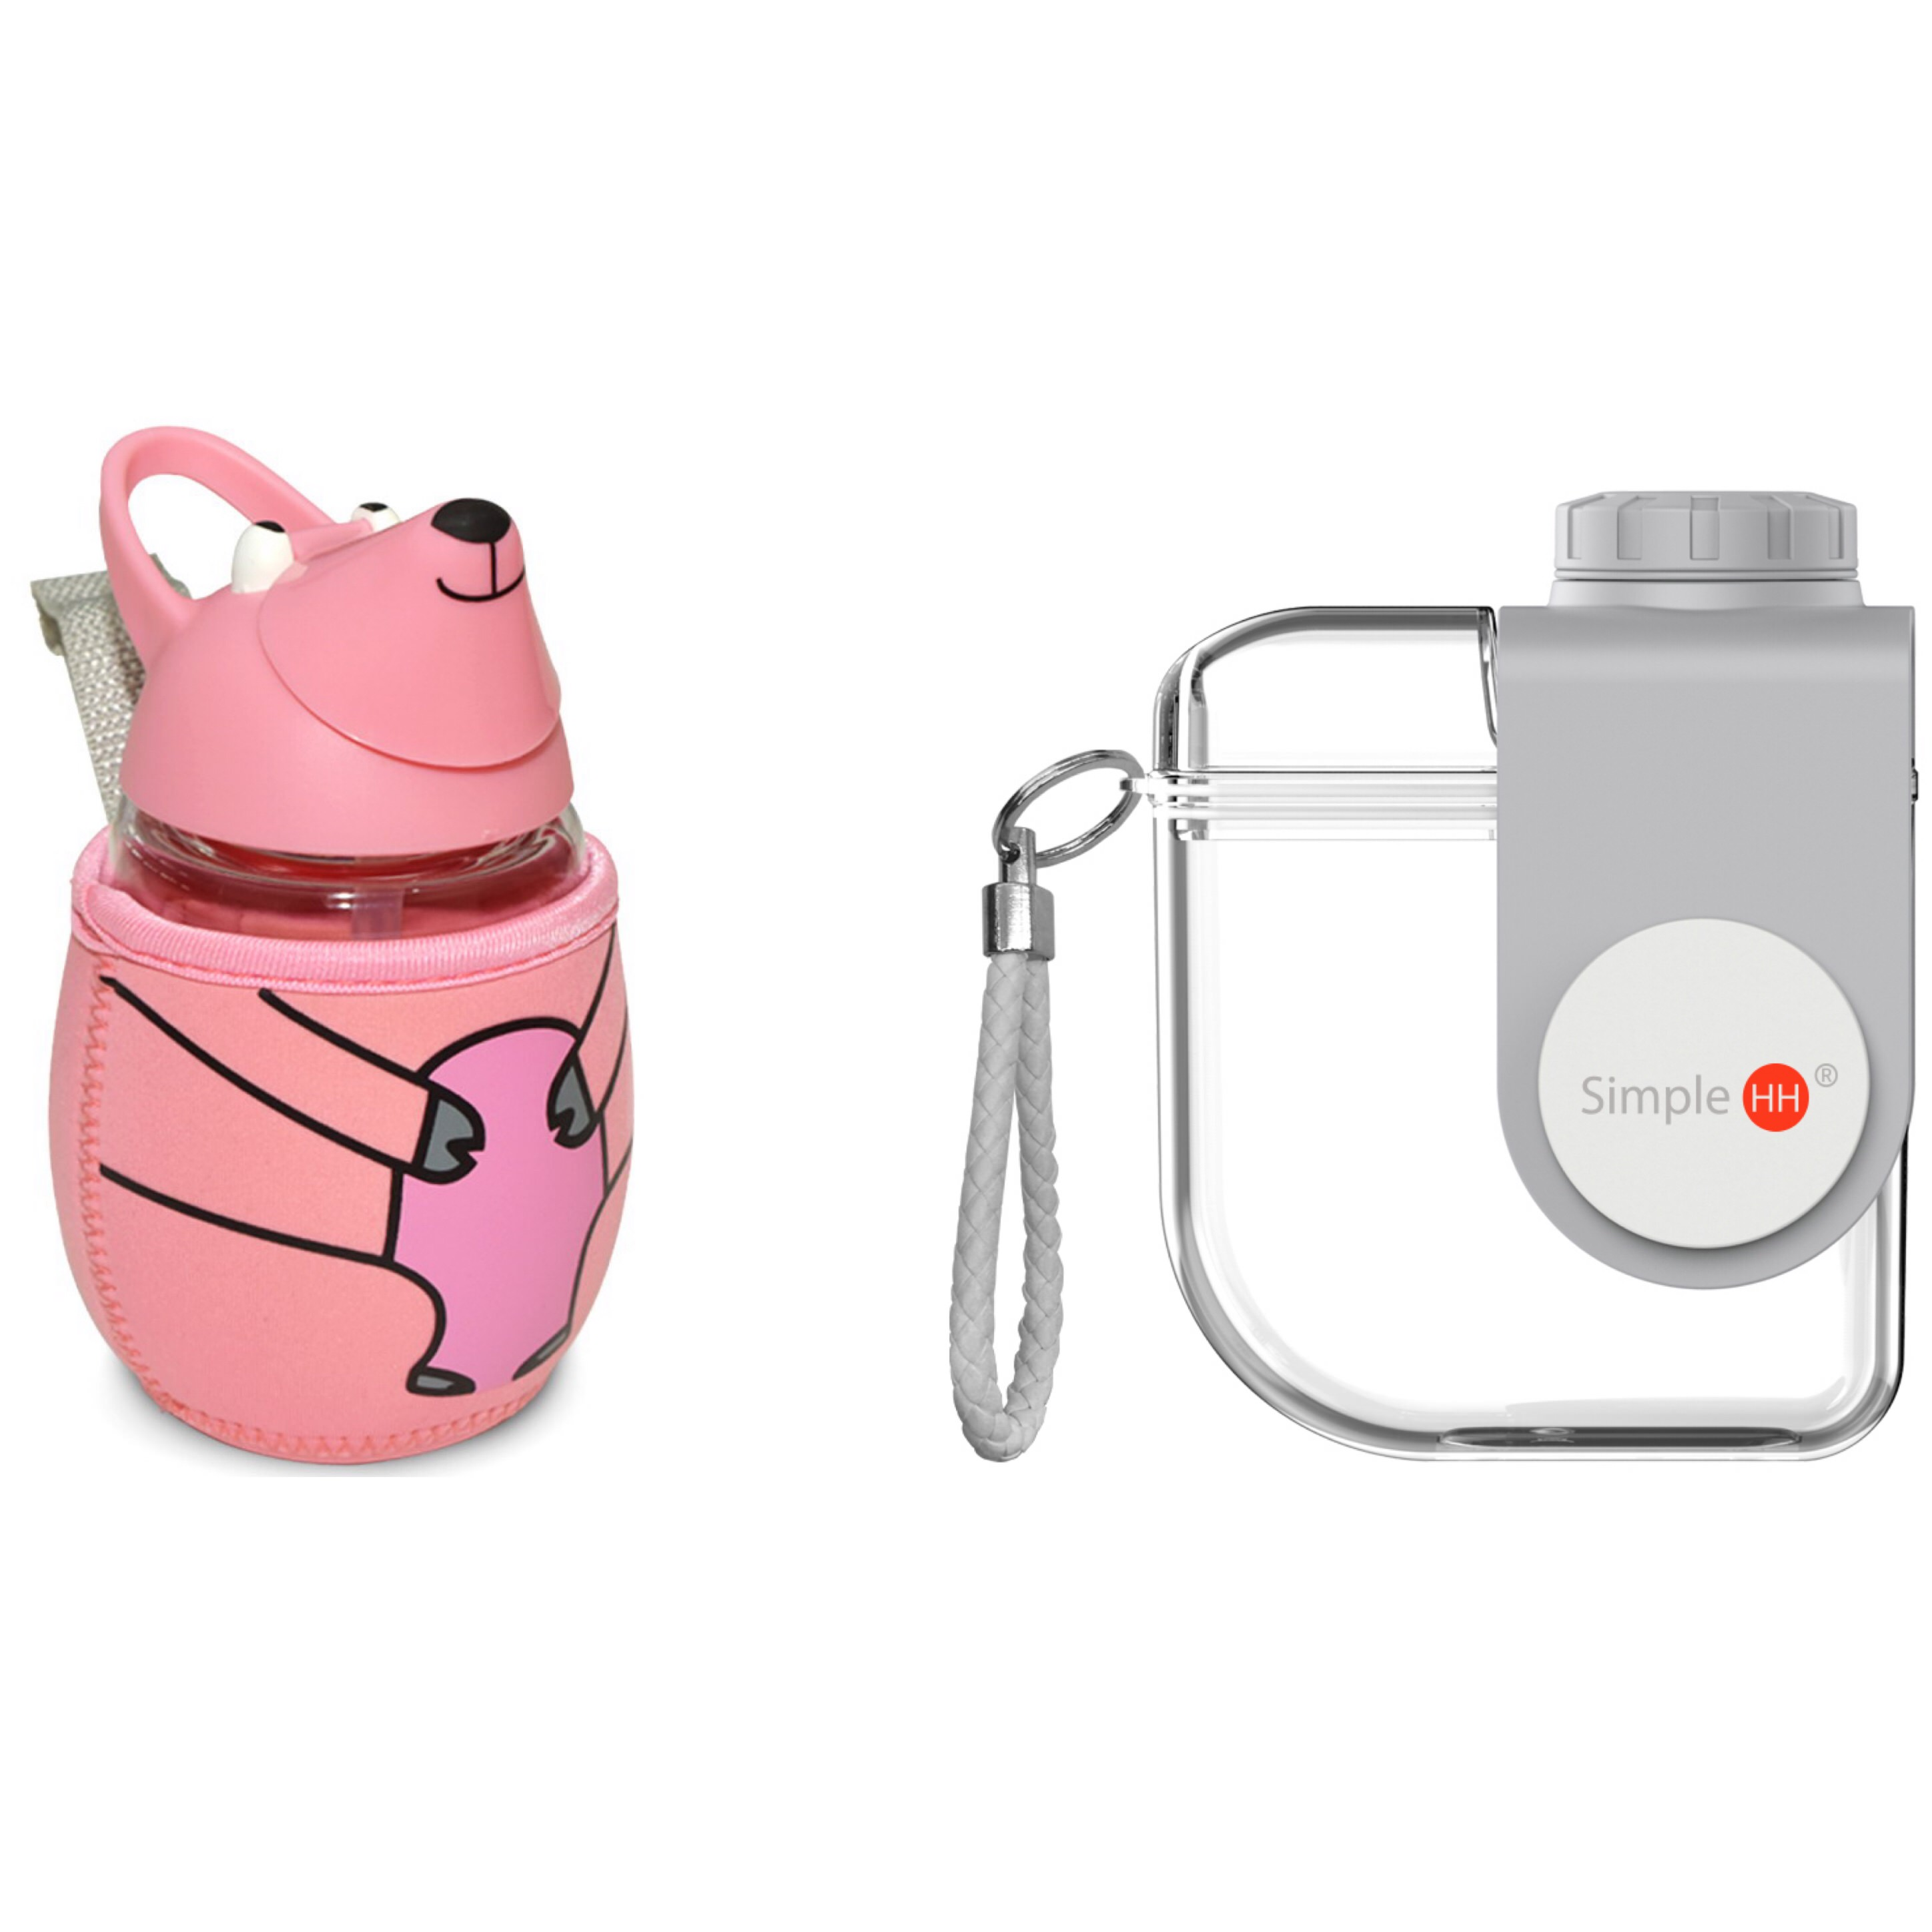 Simple HH Mouse Shaped Pink Water Bottle|Tritan Water Bottle With Straw|BPA Free Cold Drink Friendly | Go Back School|Extra Wide Mouth w/ Easy Twist Lid